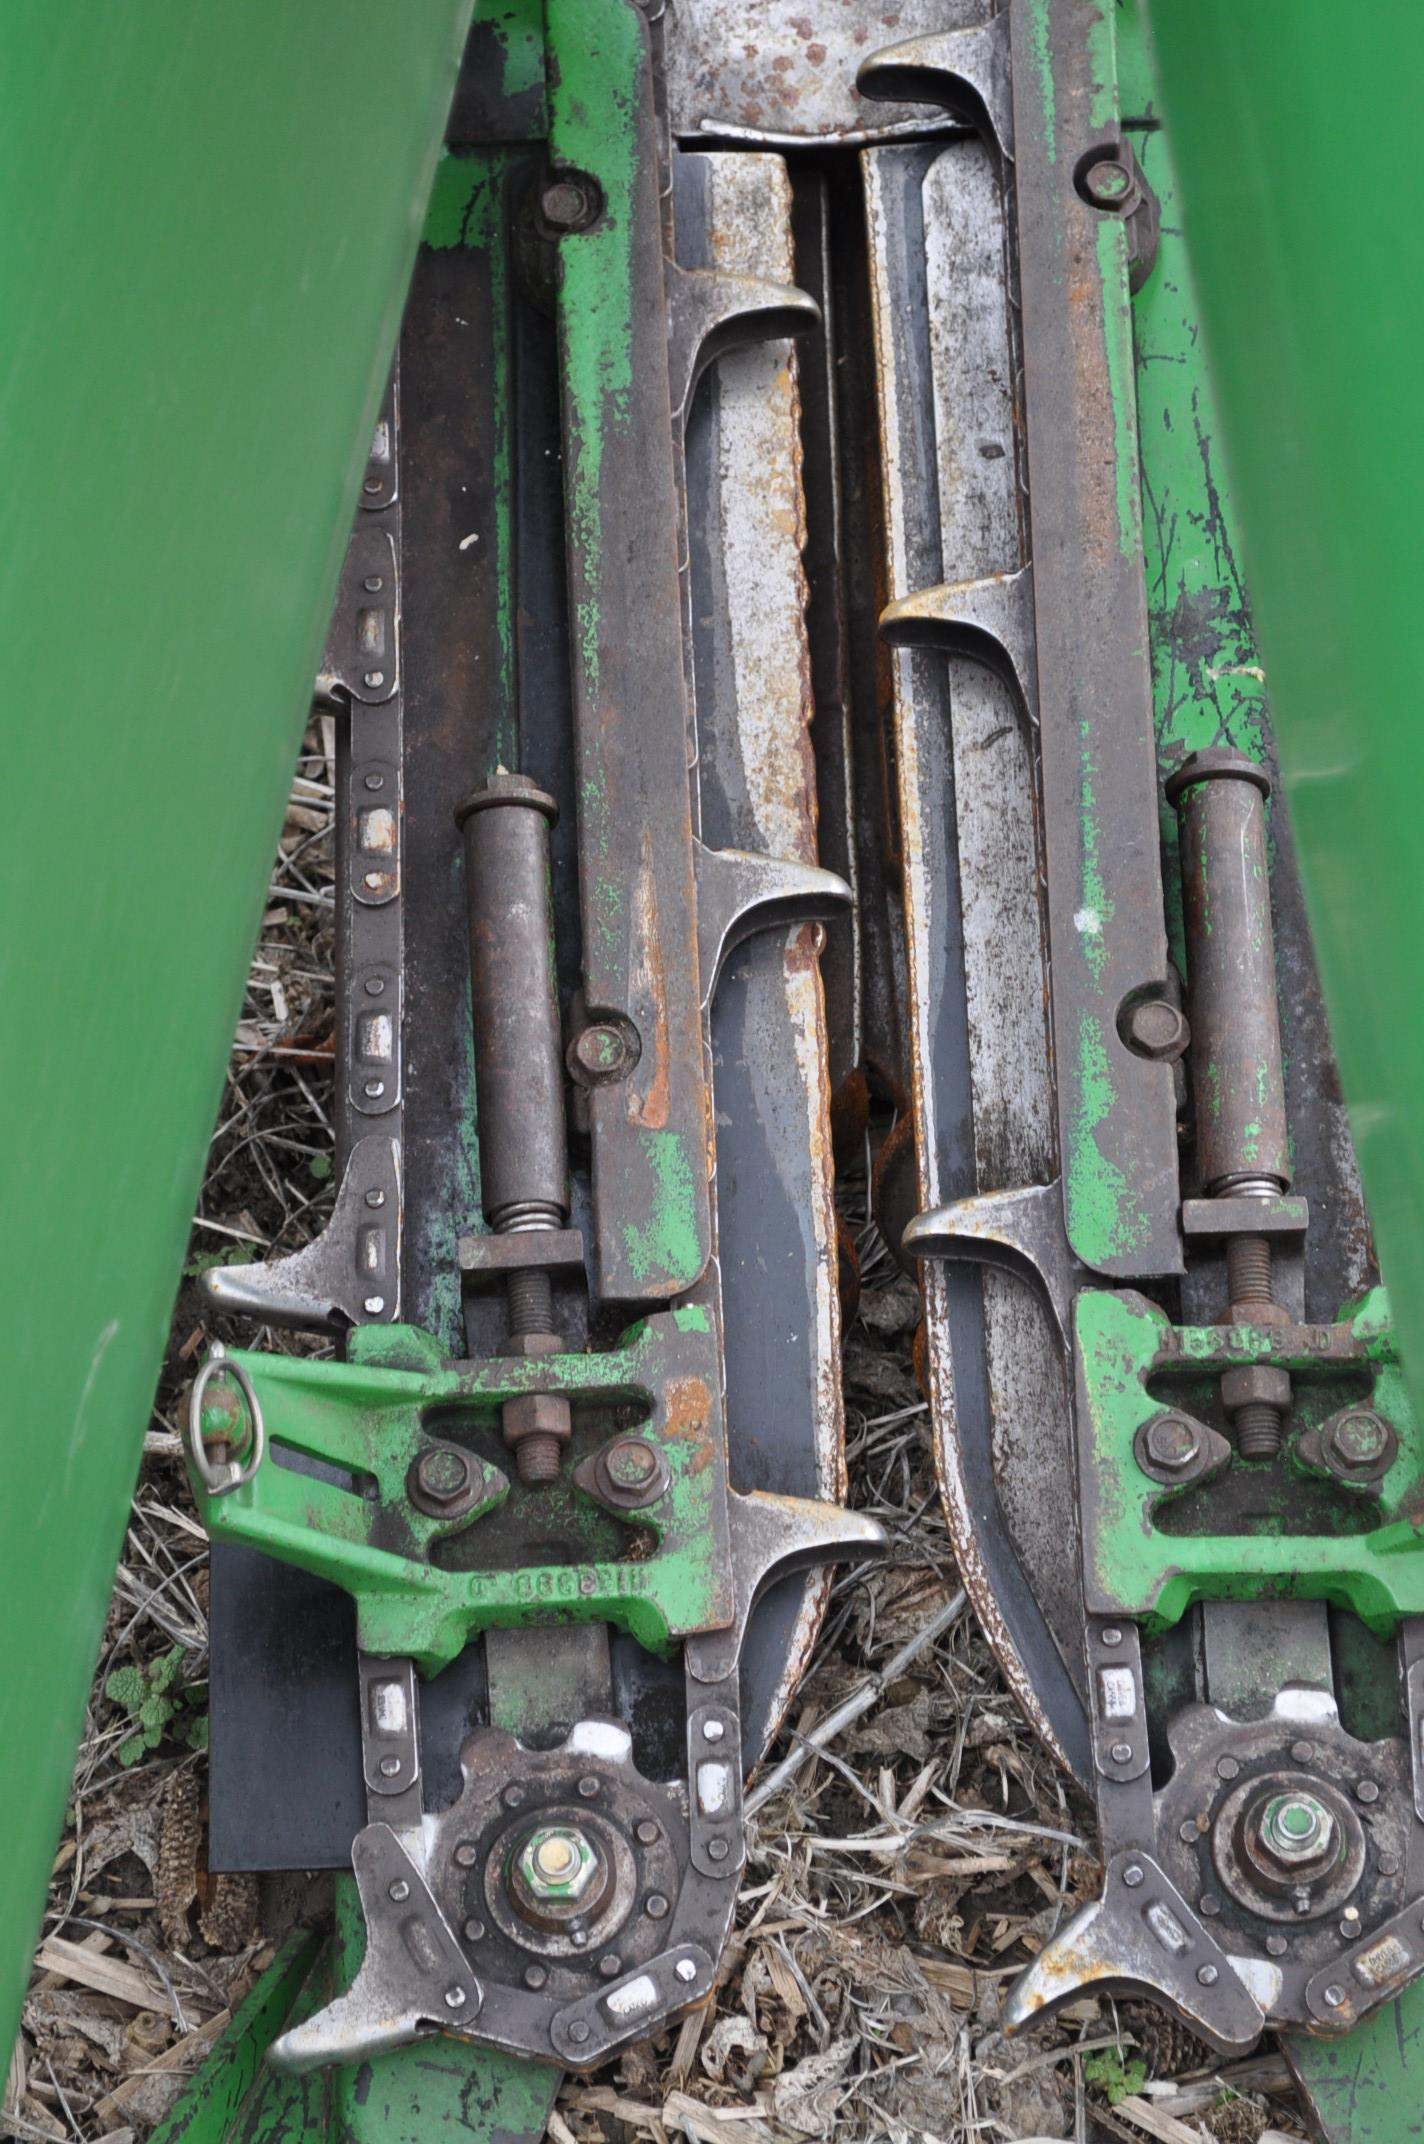 John Deere 693 corn head, poly, fluted rolls, hyd deck plates, pto shafts, SN 710815 - Image 10 of 14